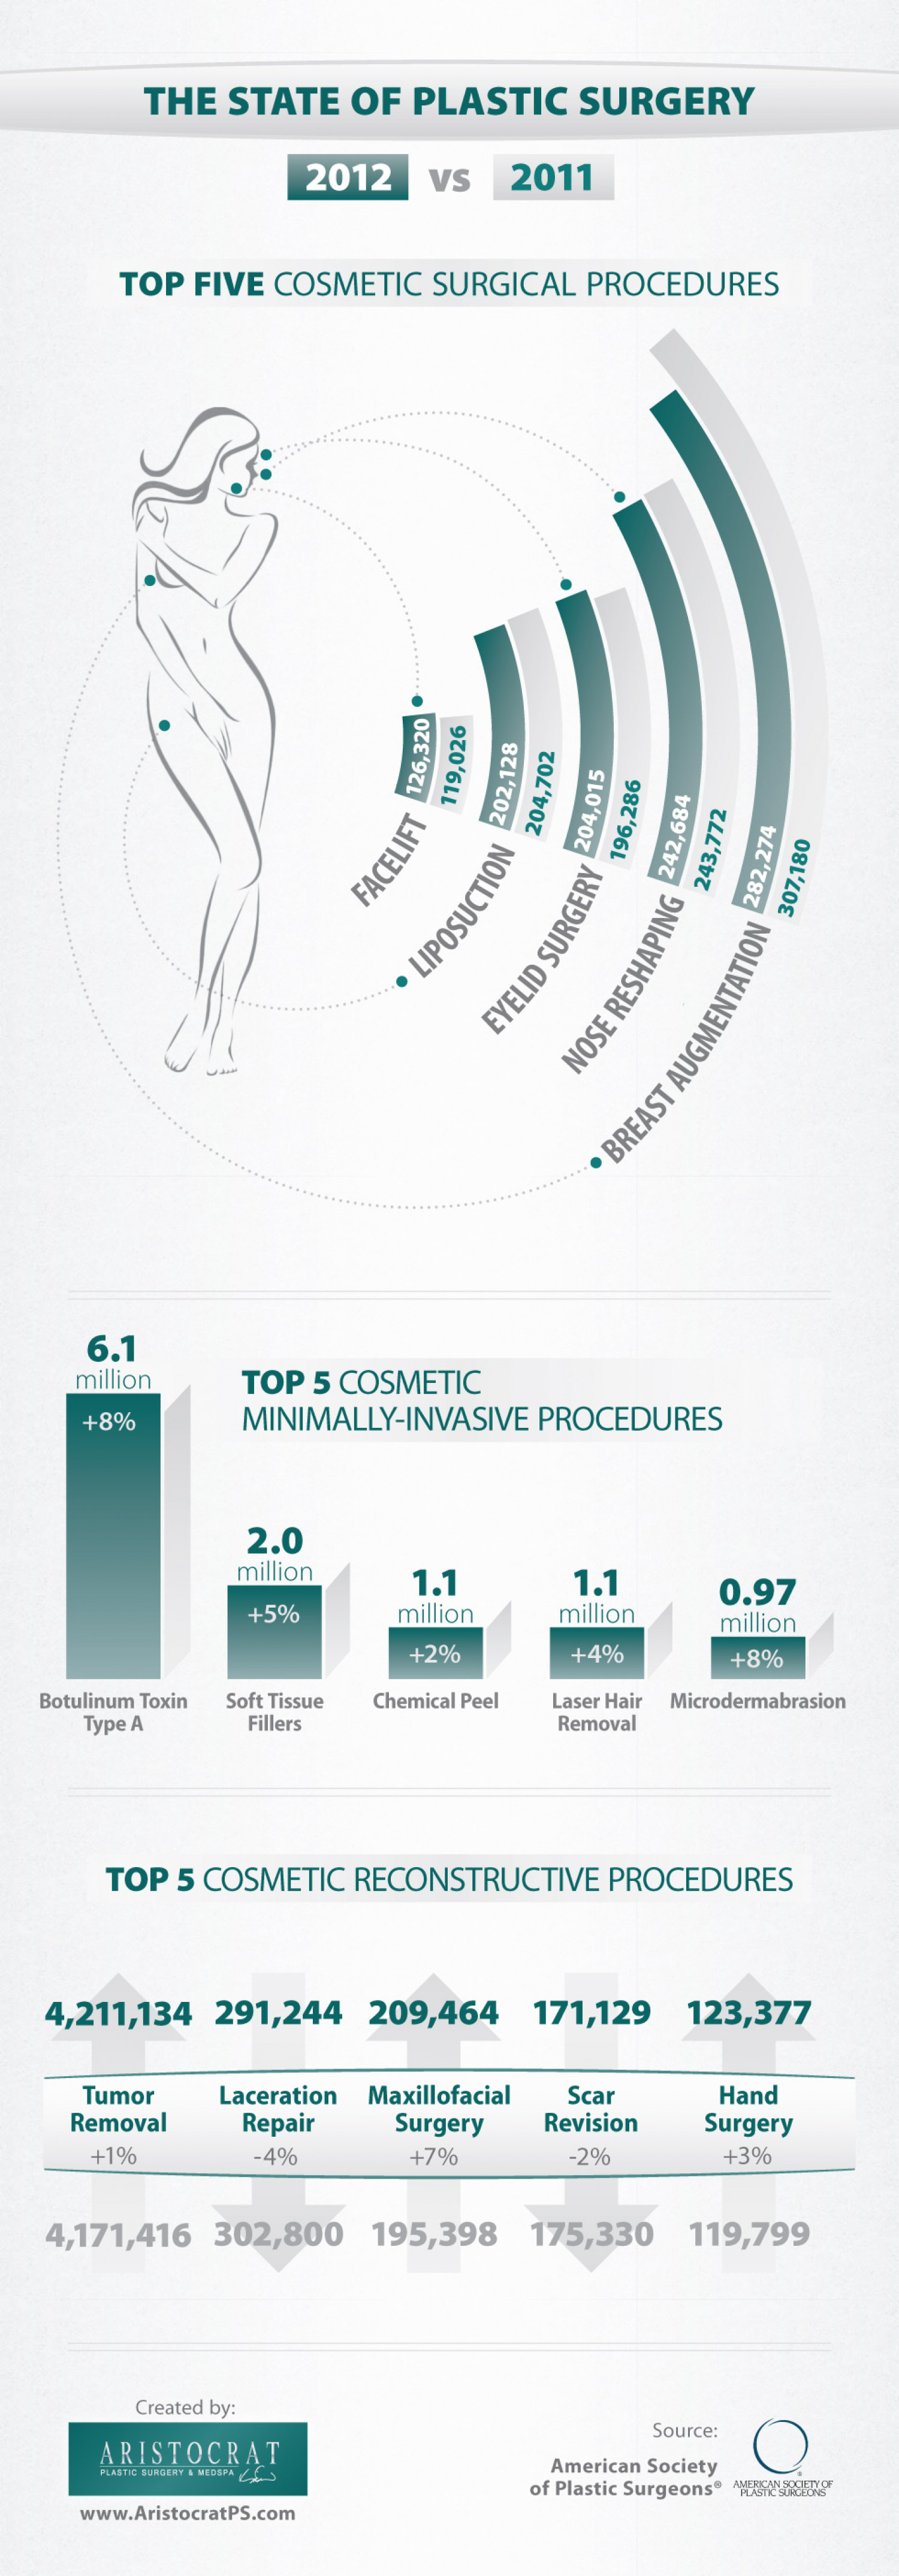 The State of Plastic Surgery - 2011 vs 2012 Infographic